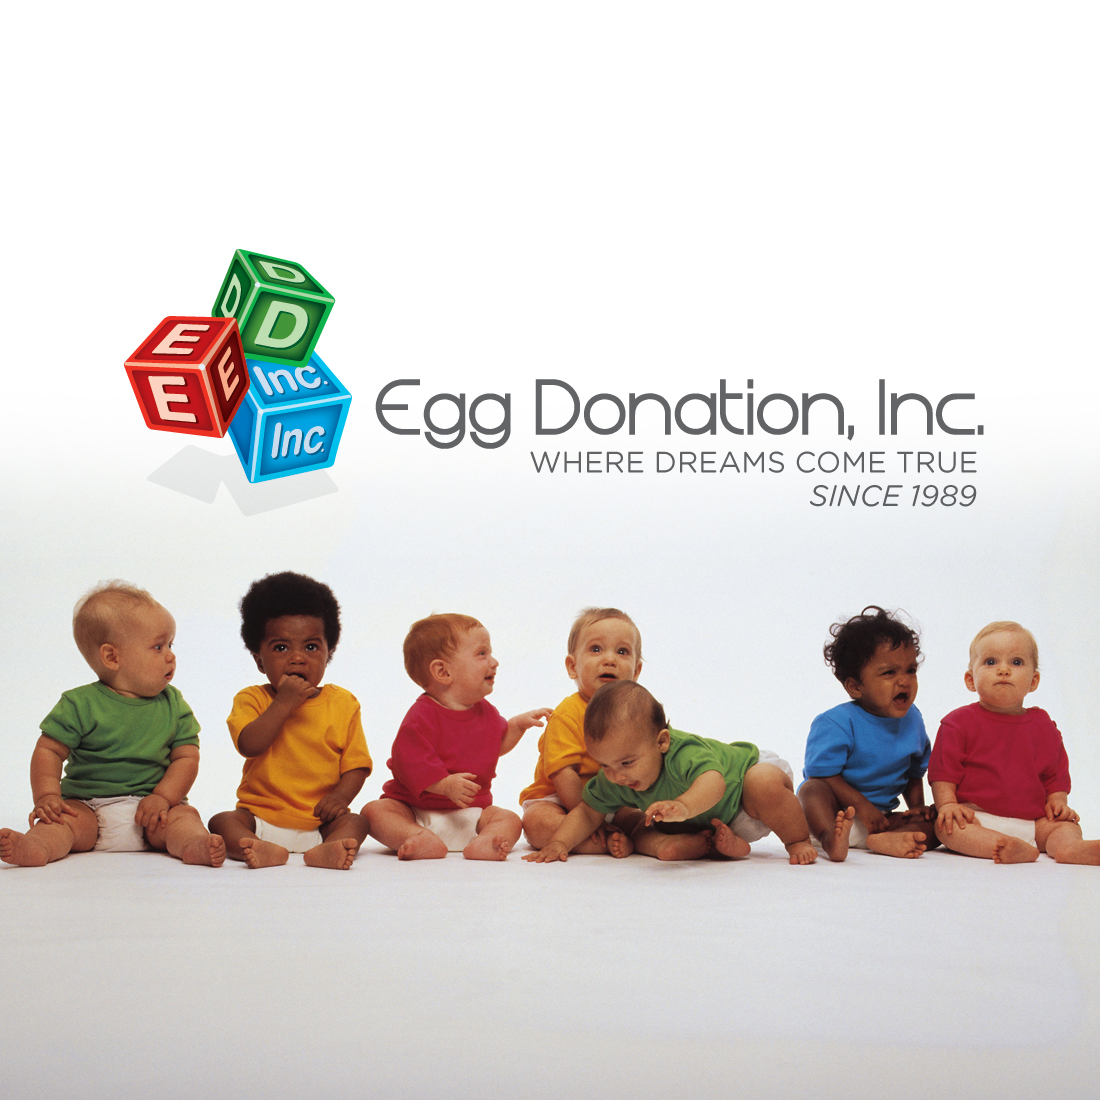 Egg Donation, Inc. - Branding and Website Design